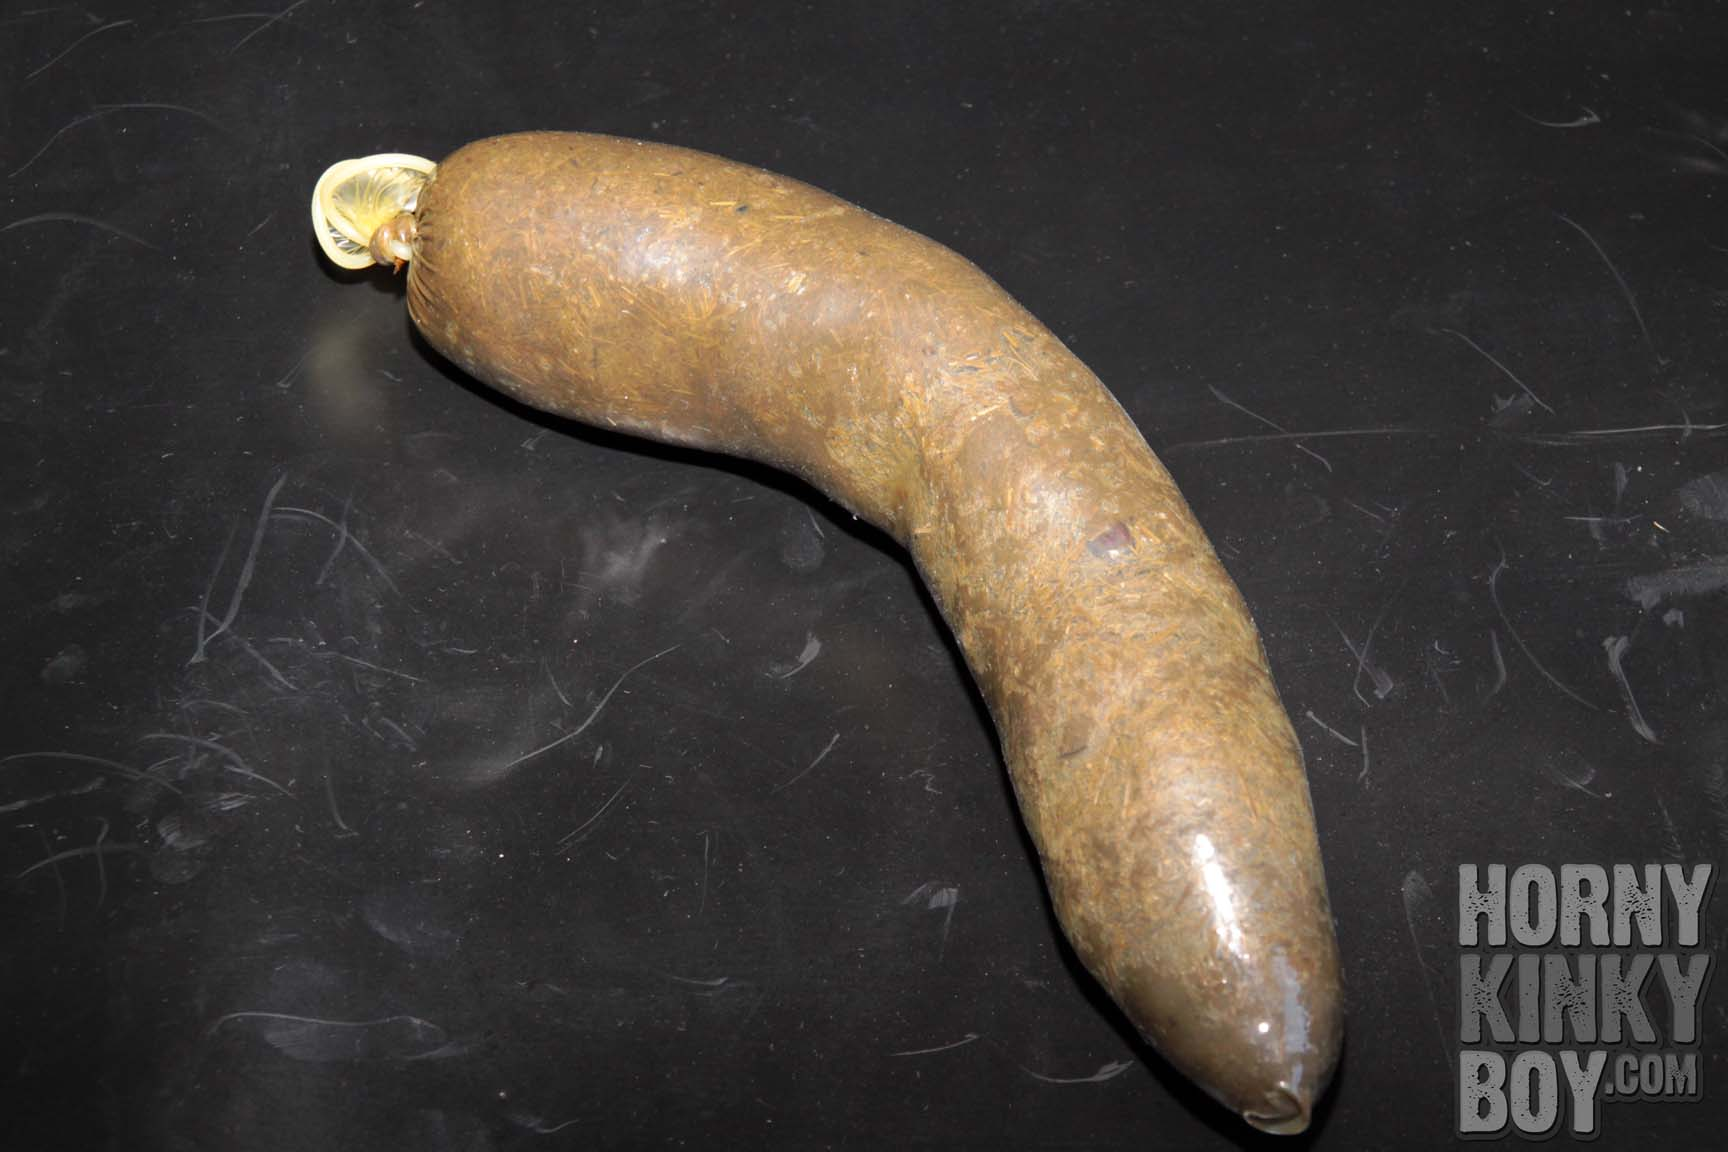 Long Condom Stuffed With Horse Droppings